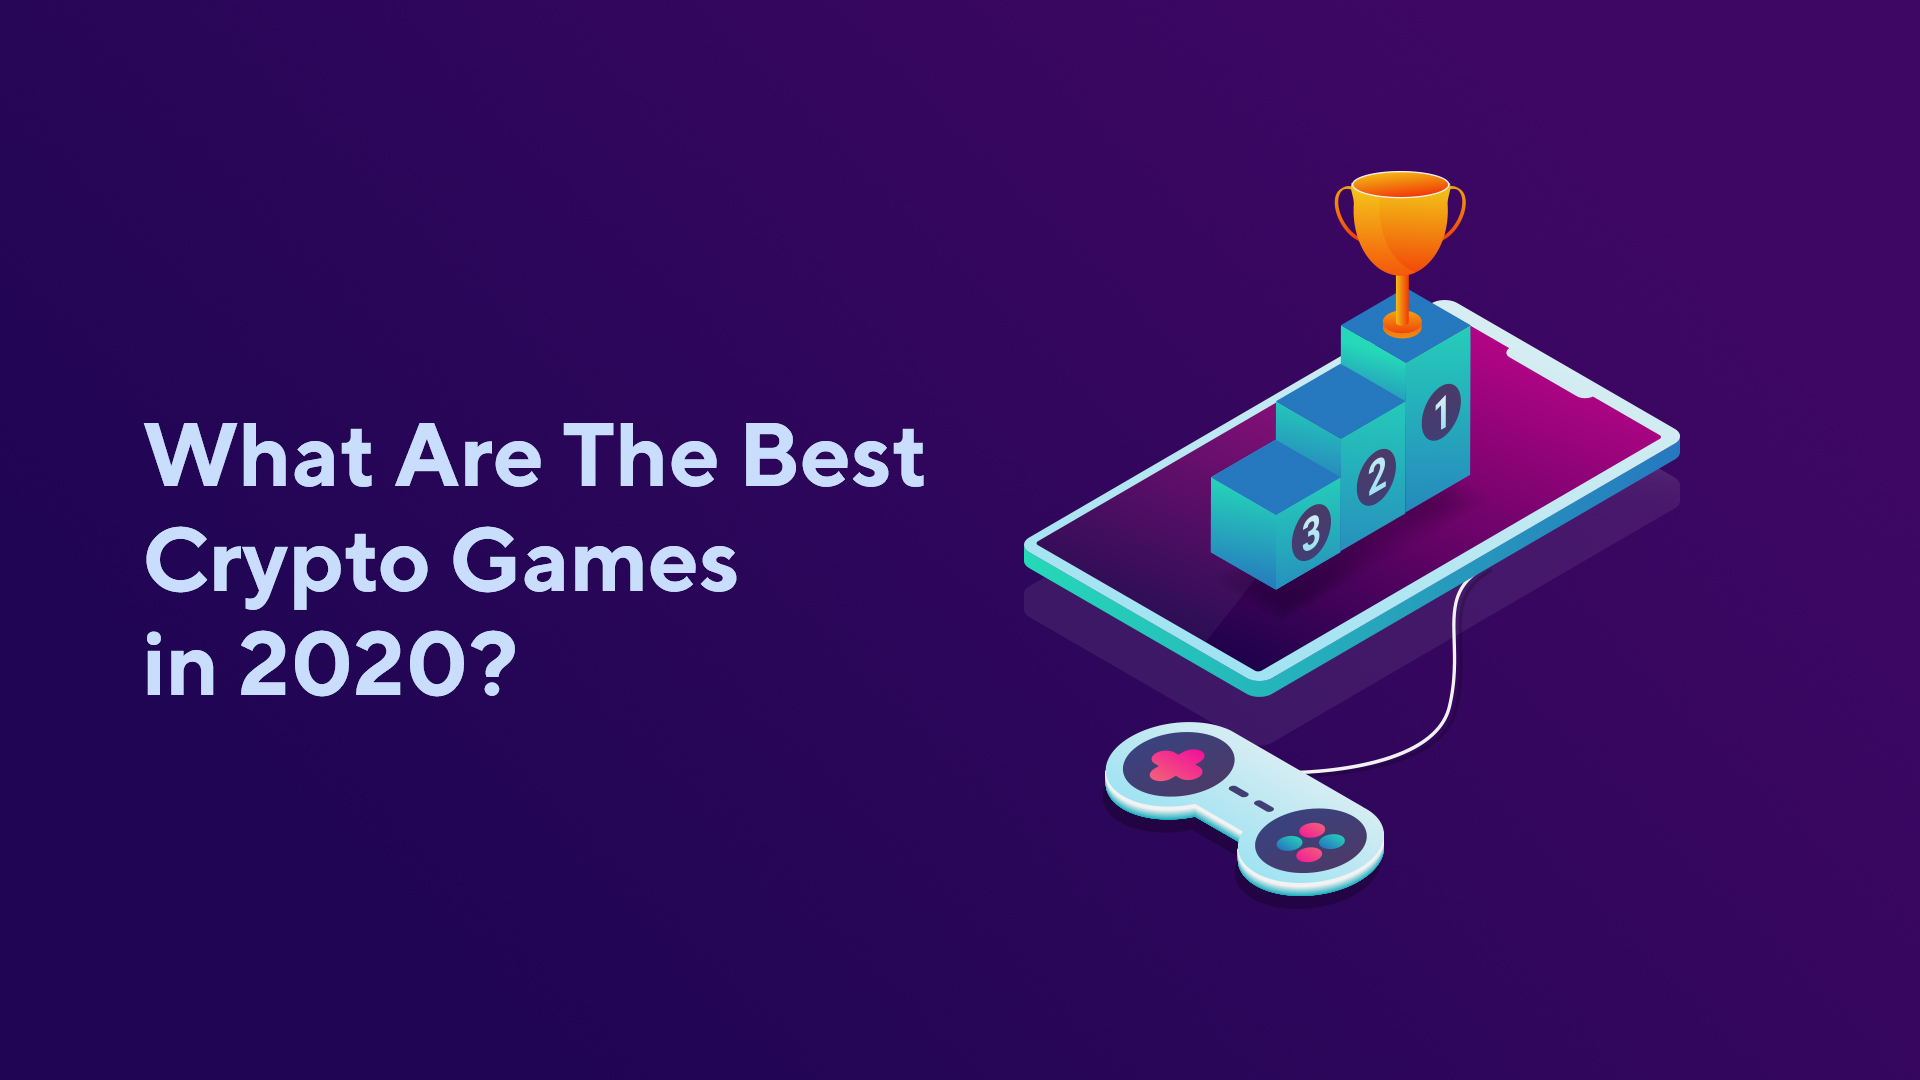 What Are The Best Crypto Games in 2020?